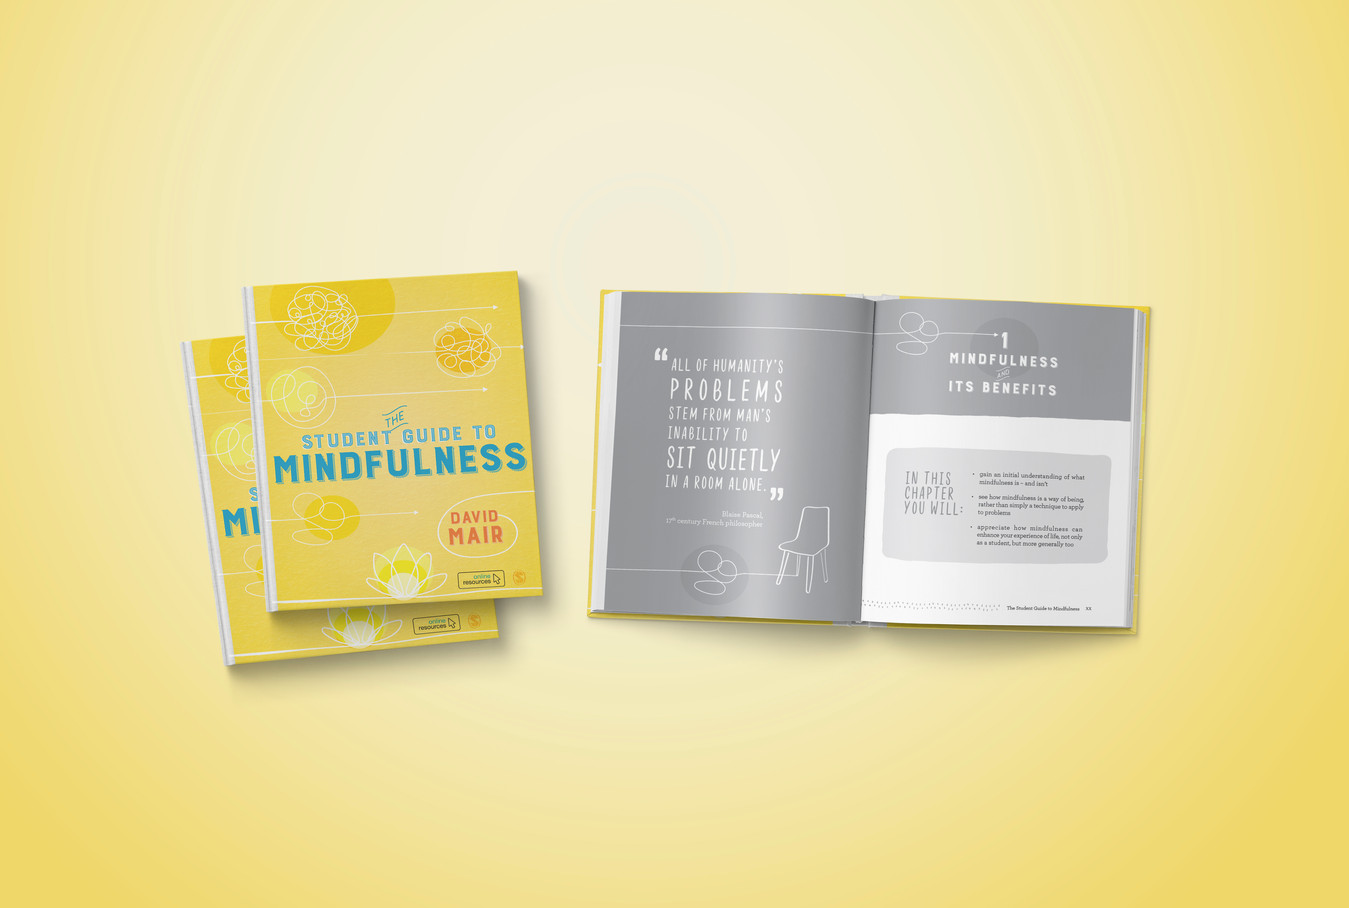 The Student Guide to Mindfulness_Mair_Co